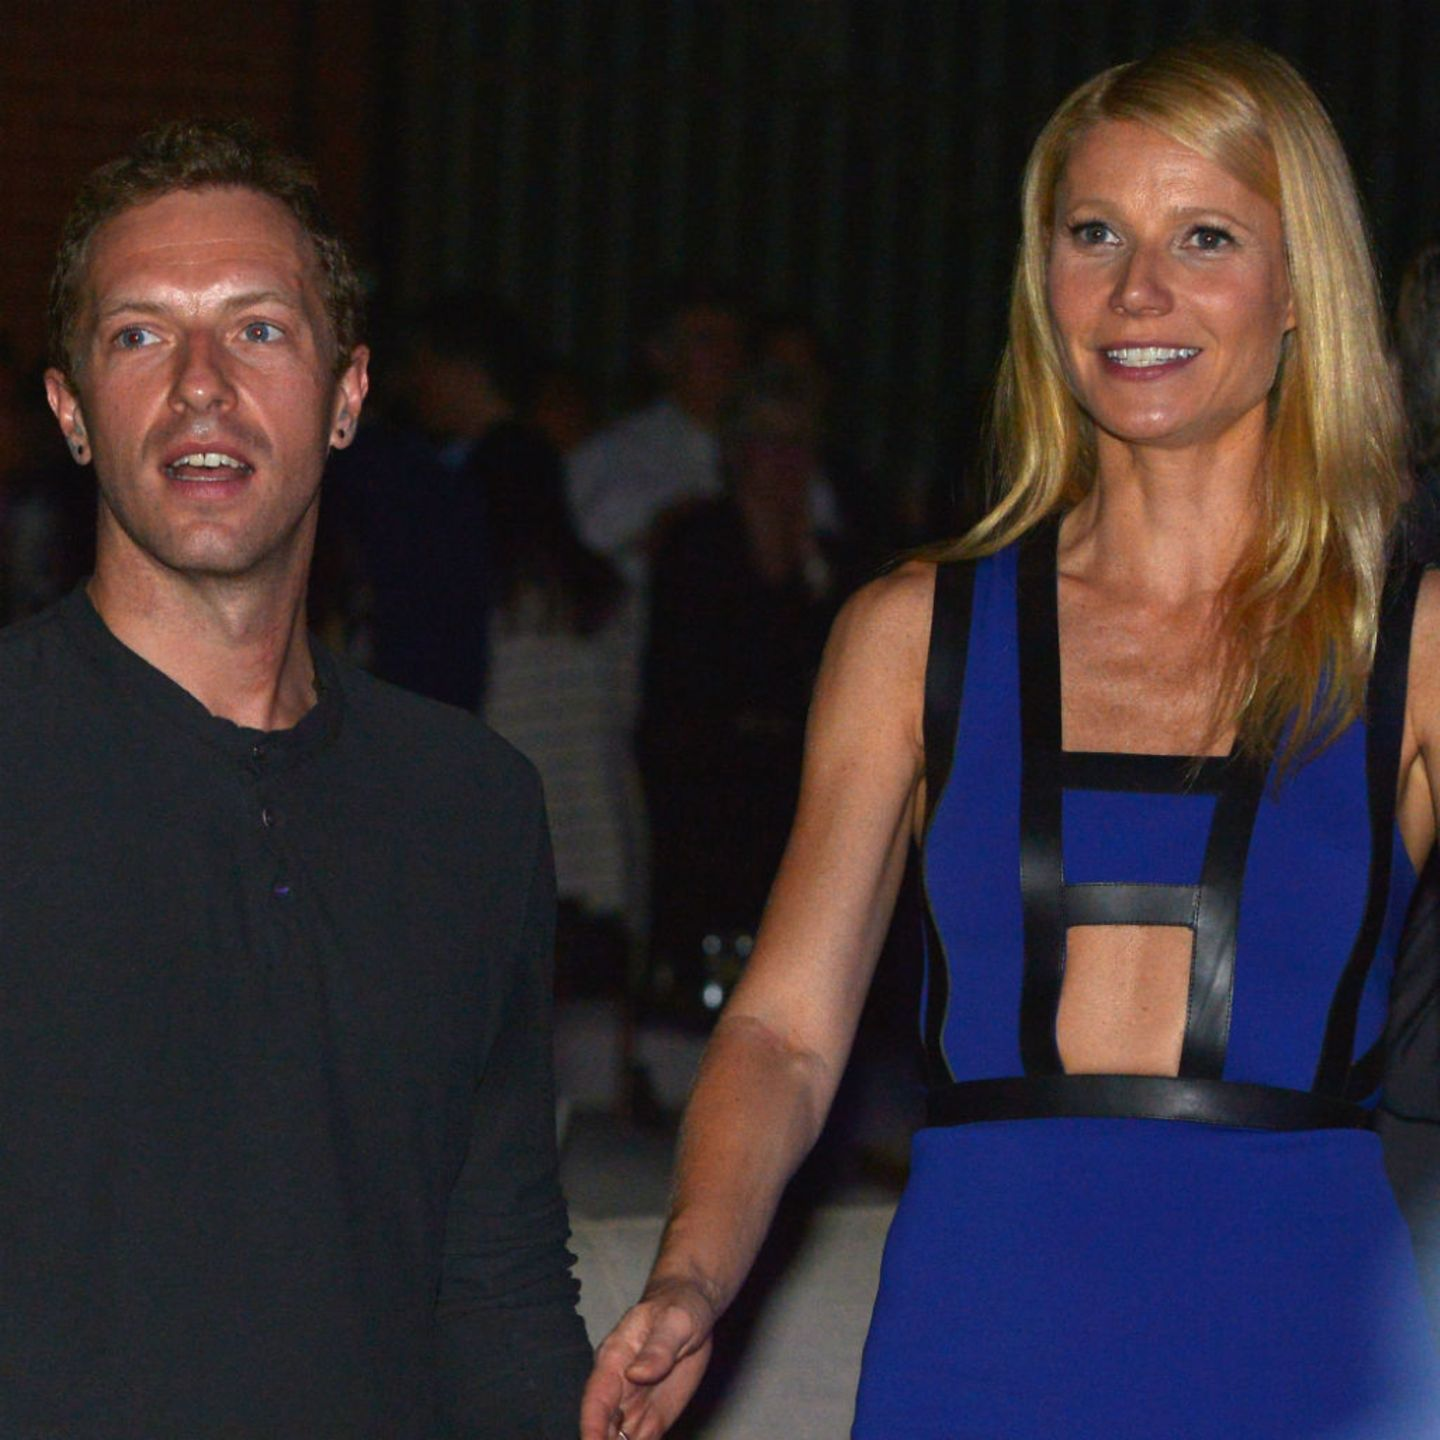 Chris Martin + Gwyneth Paltrow